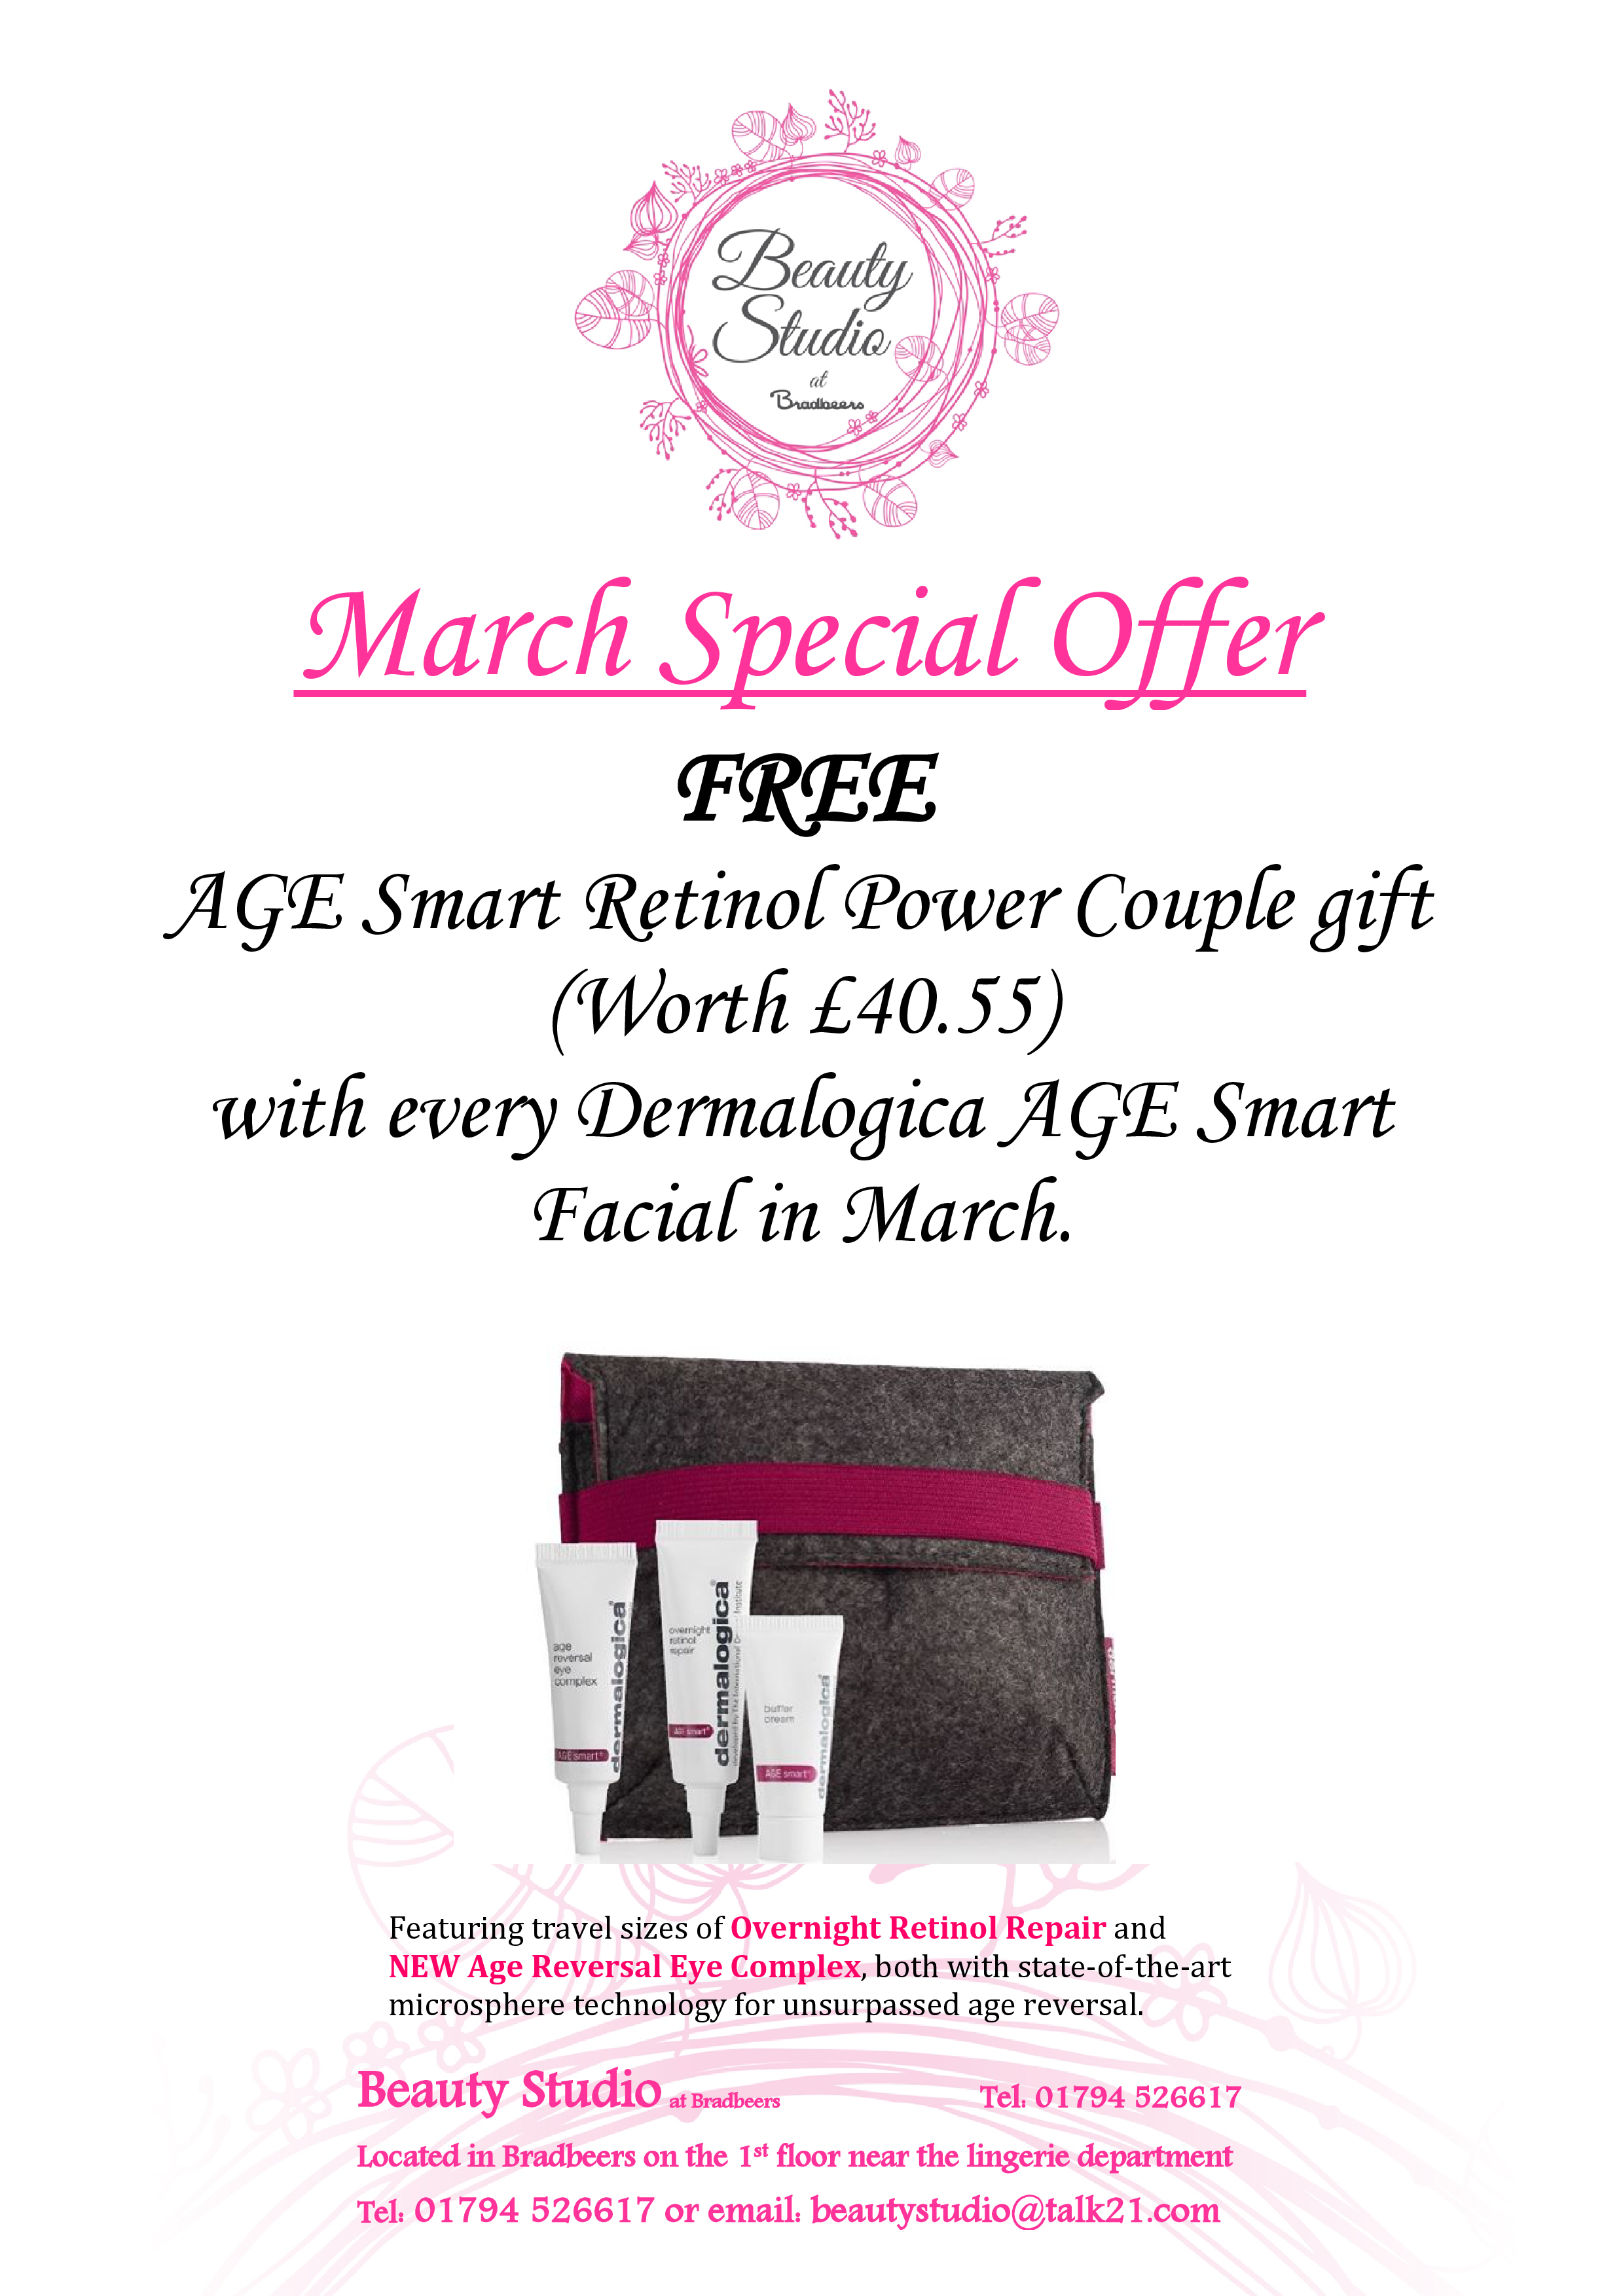 3. March special offer (1)